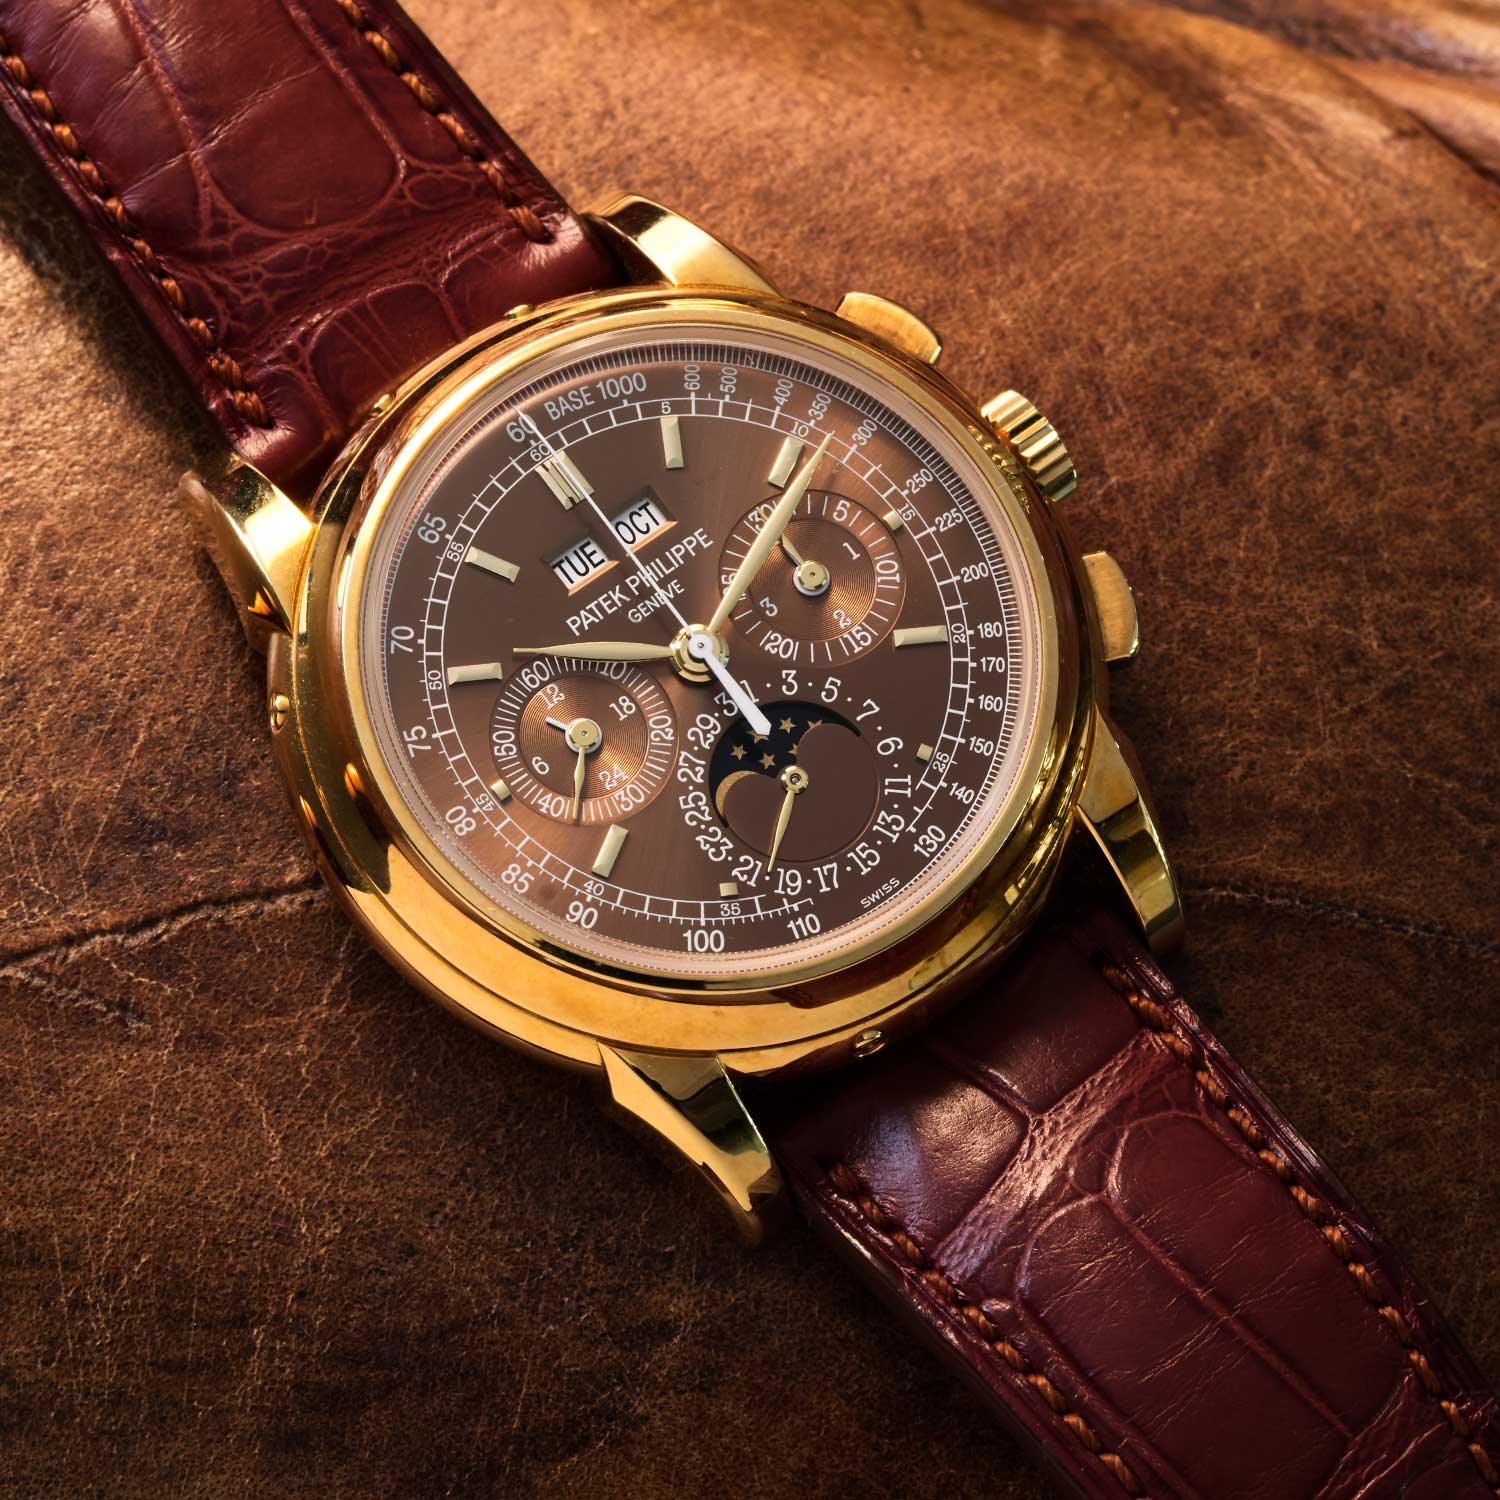 Wei's Patek Philippe Perpetual Calendar Chronograph ref. 5970 in rose gold with a unique chocolate dial (©Revolution)